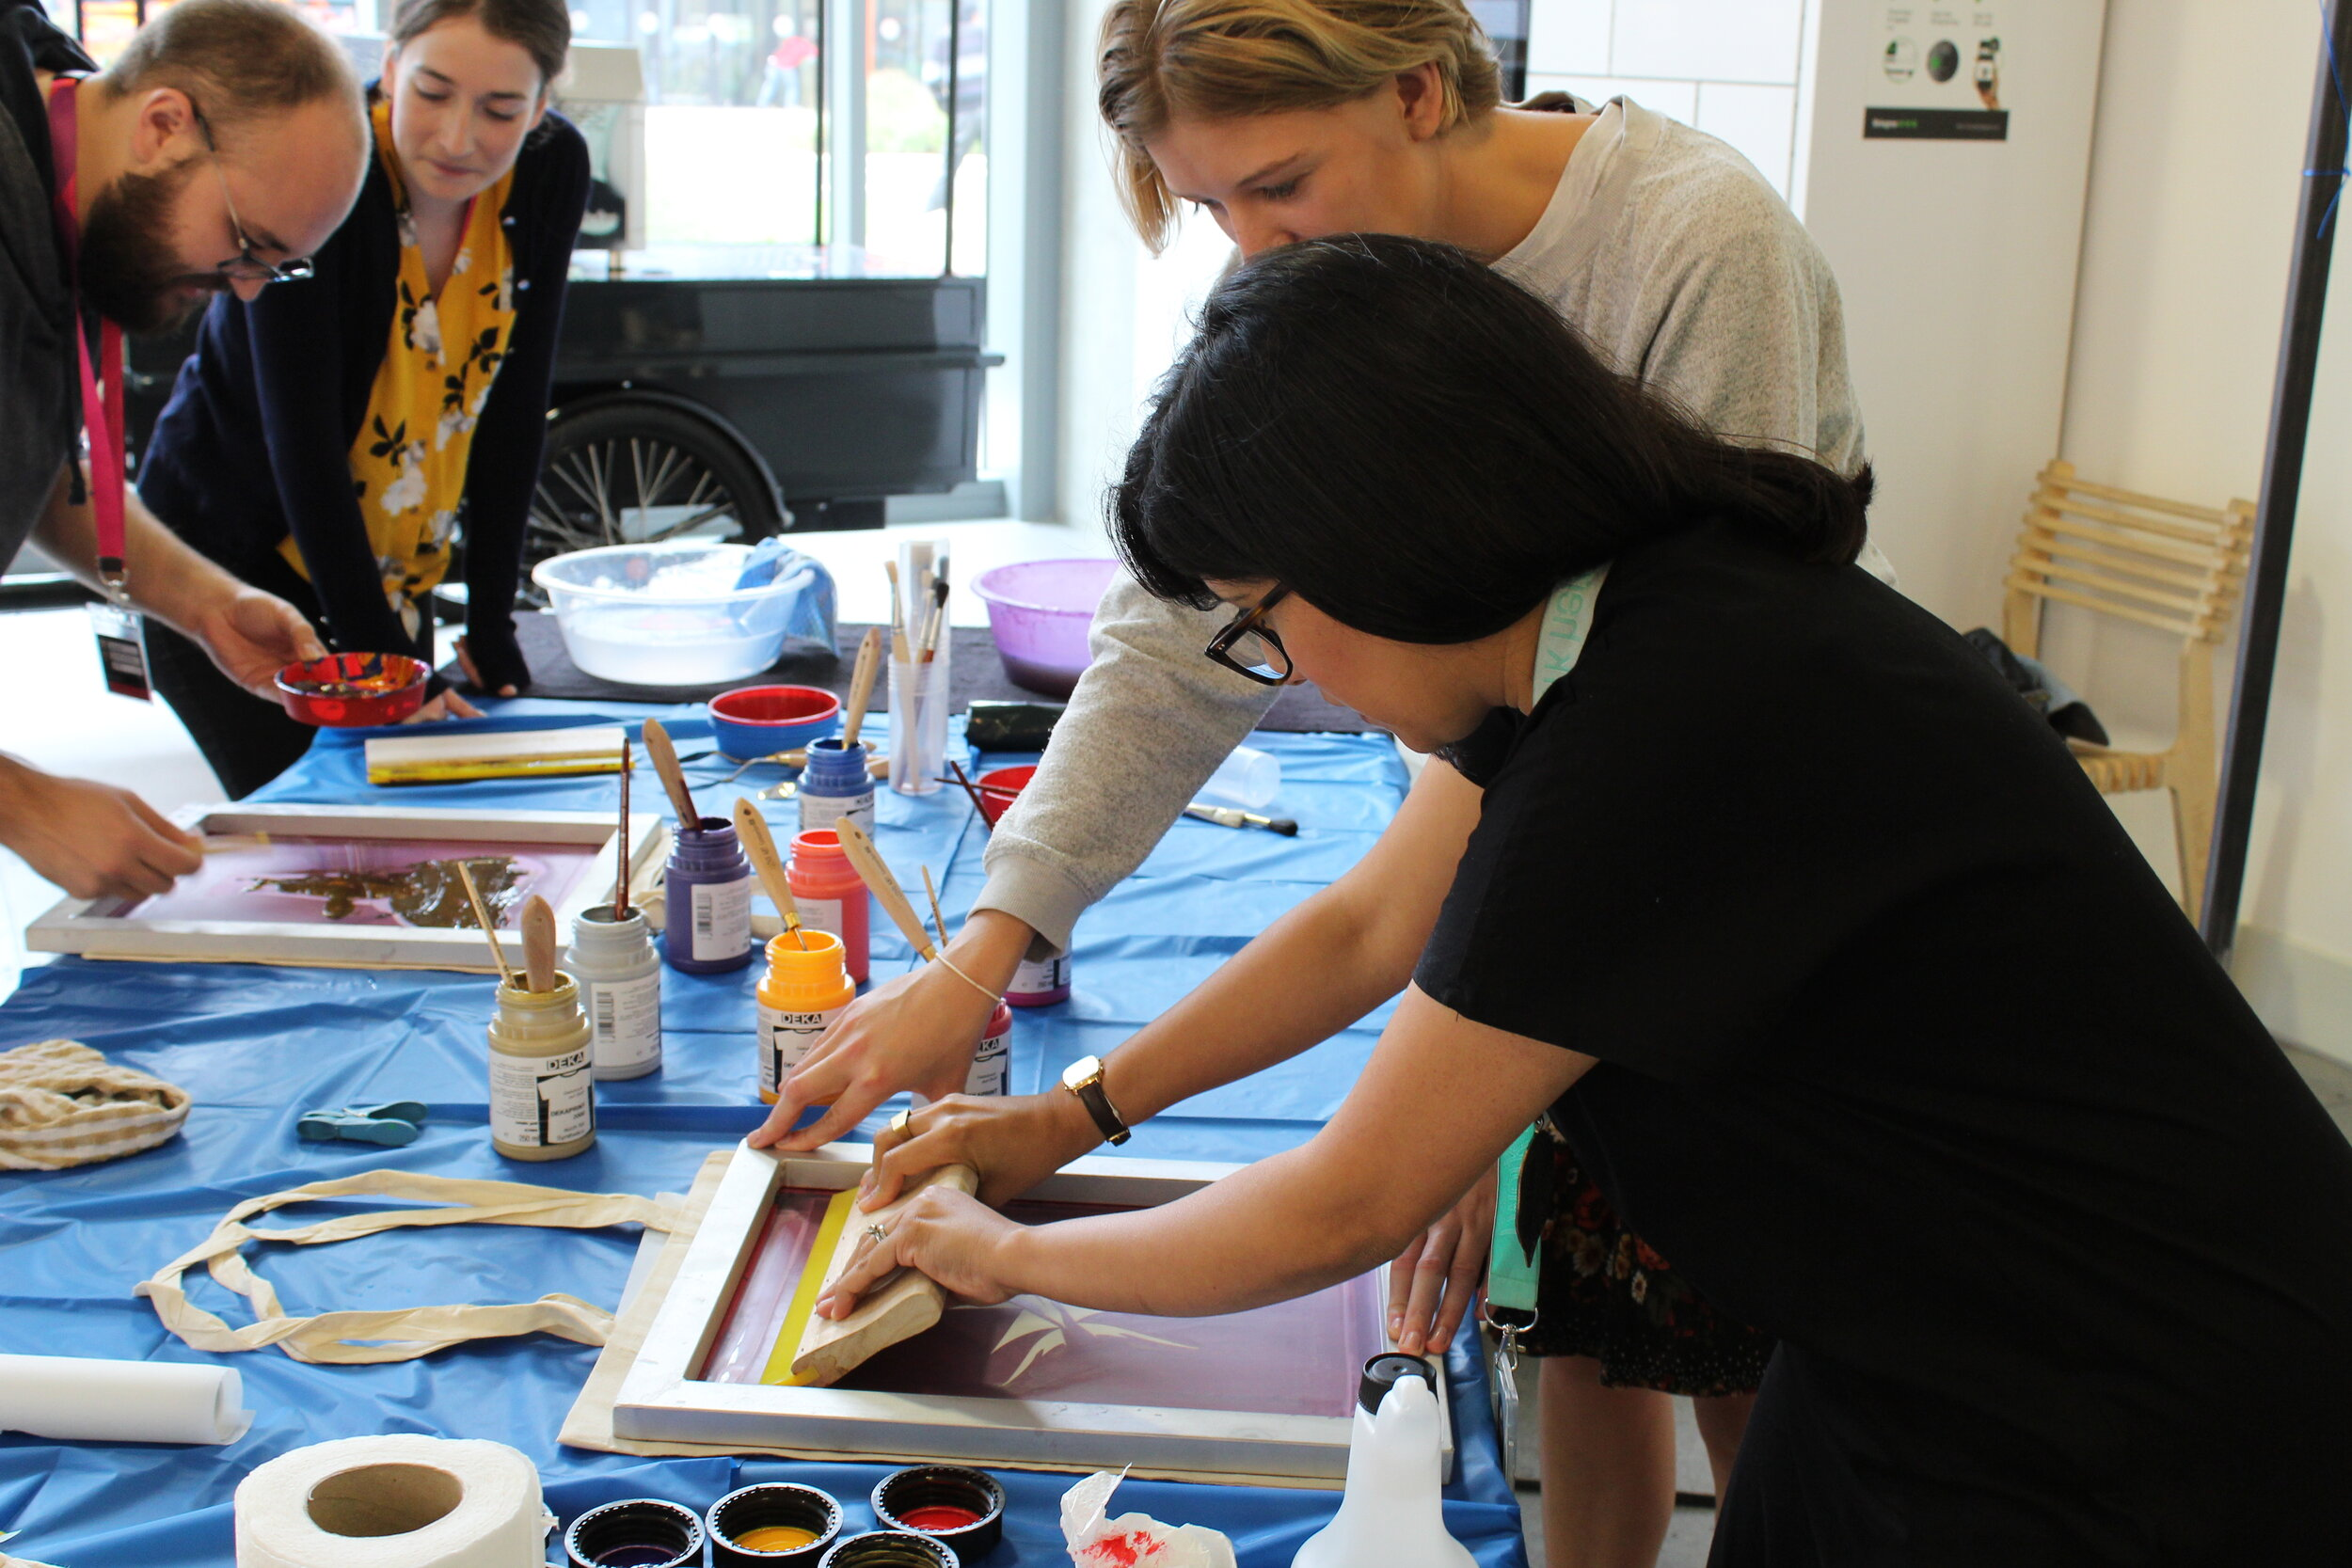 Screen Printing Workshops - Learn printing techniques to make original prints for your walls.